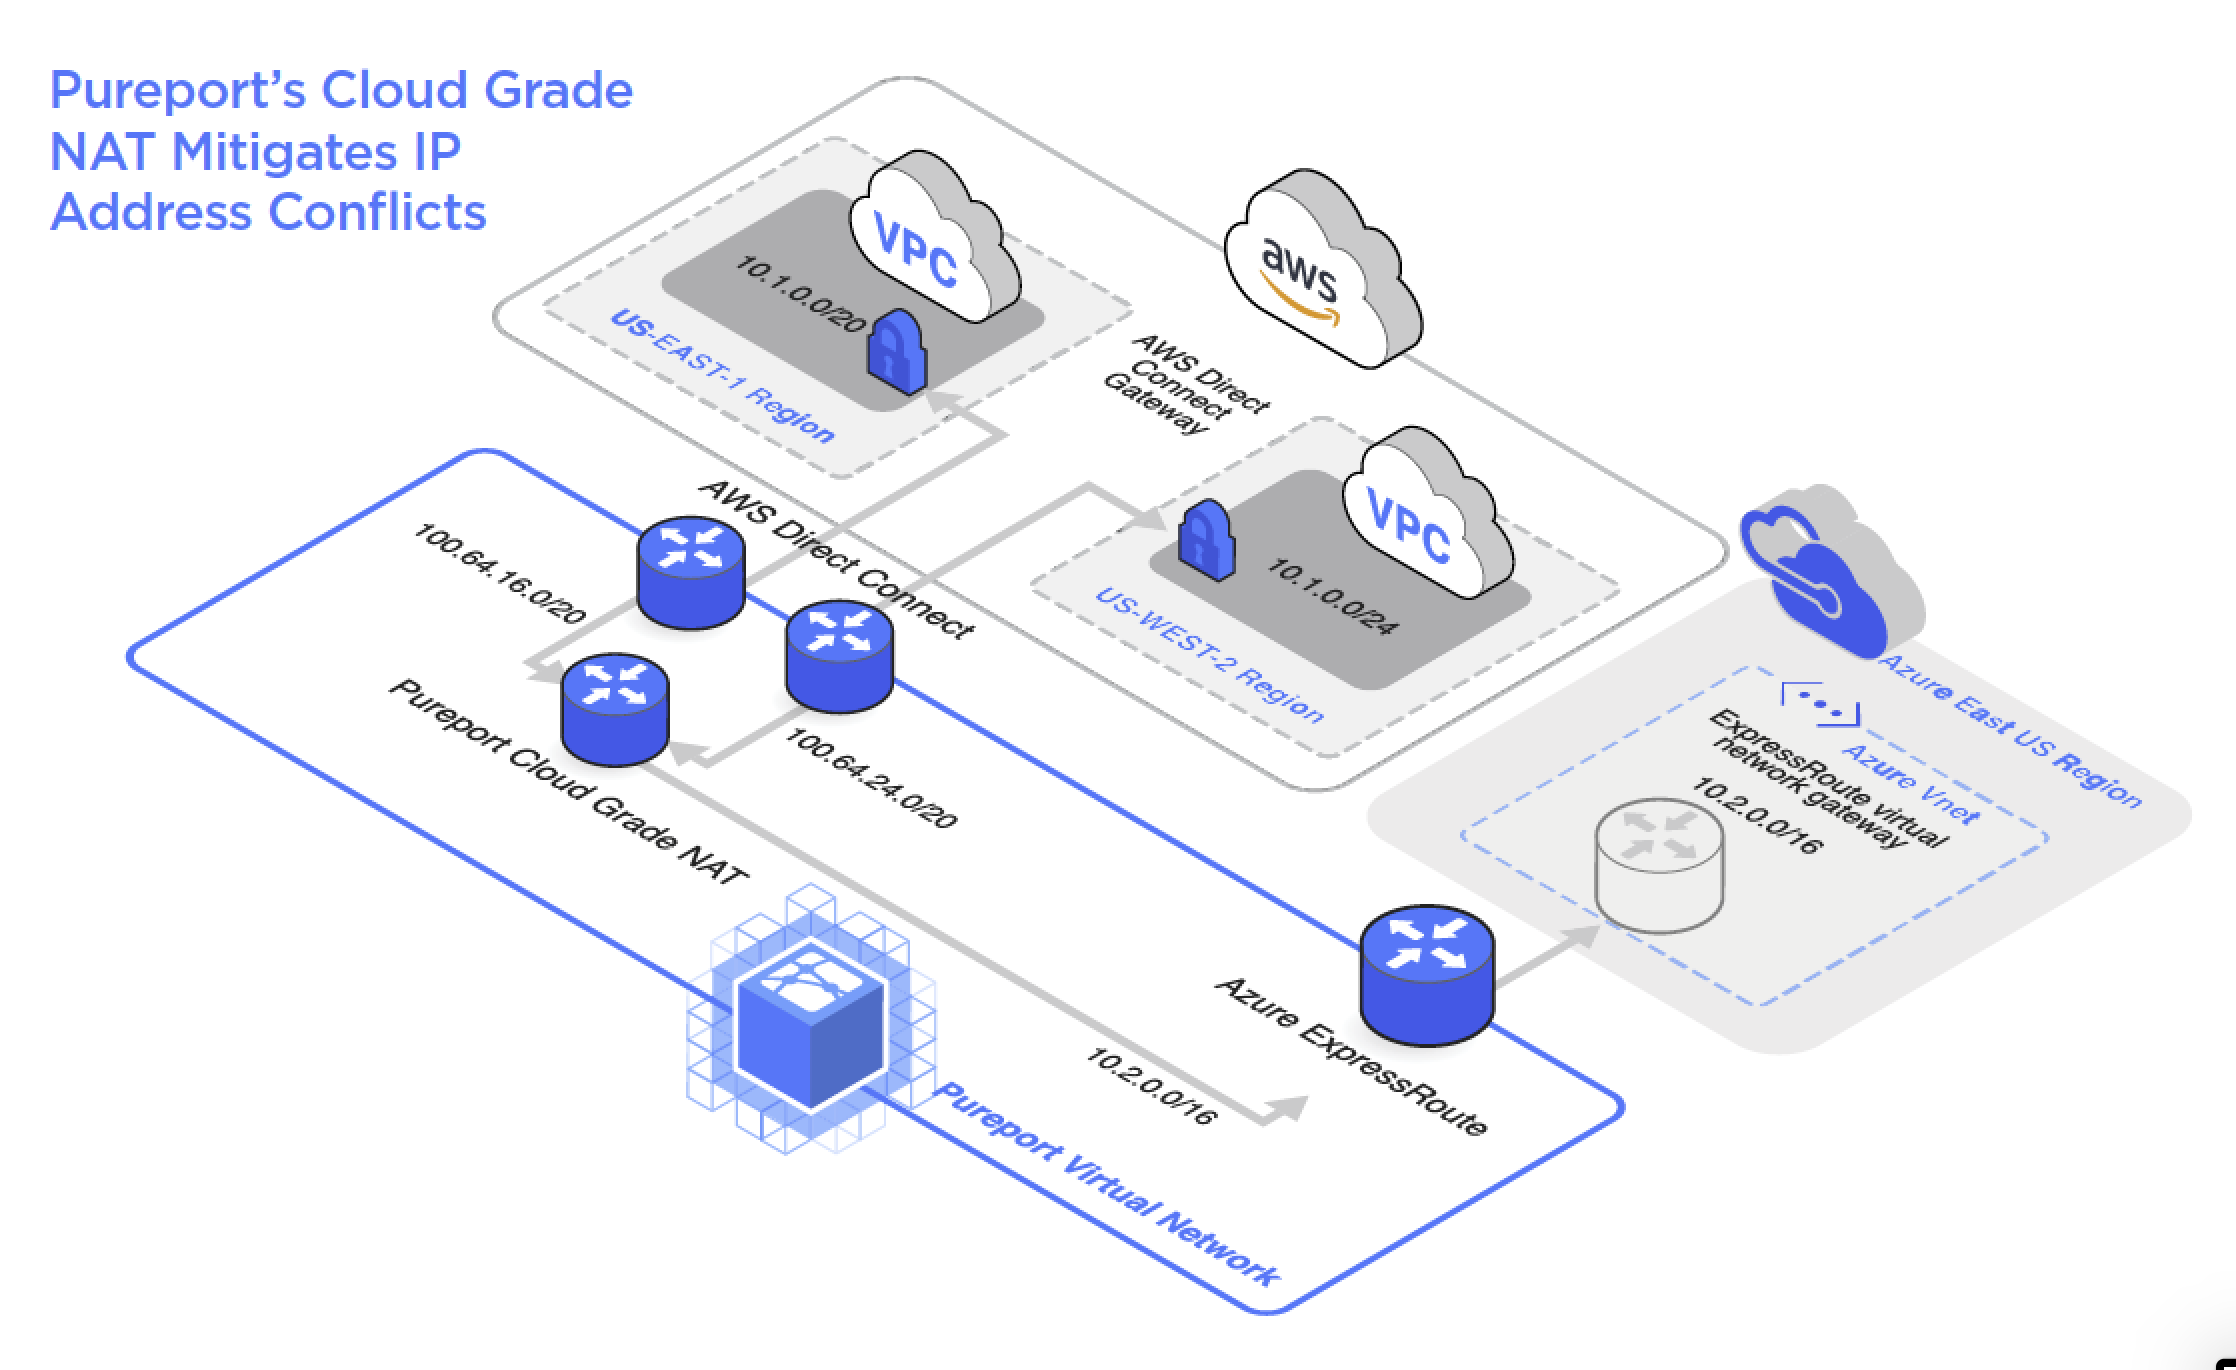 Pureport's Cloud Grade NAT Mitigates IP Address Conflicts